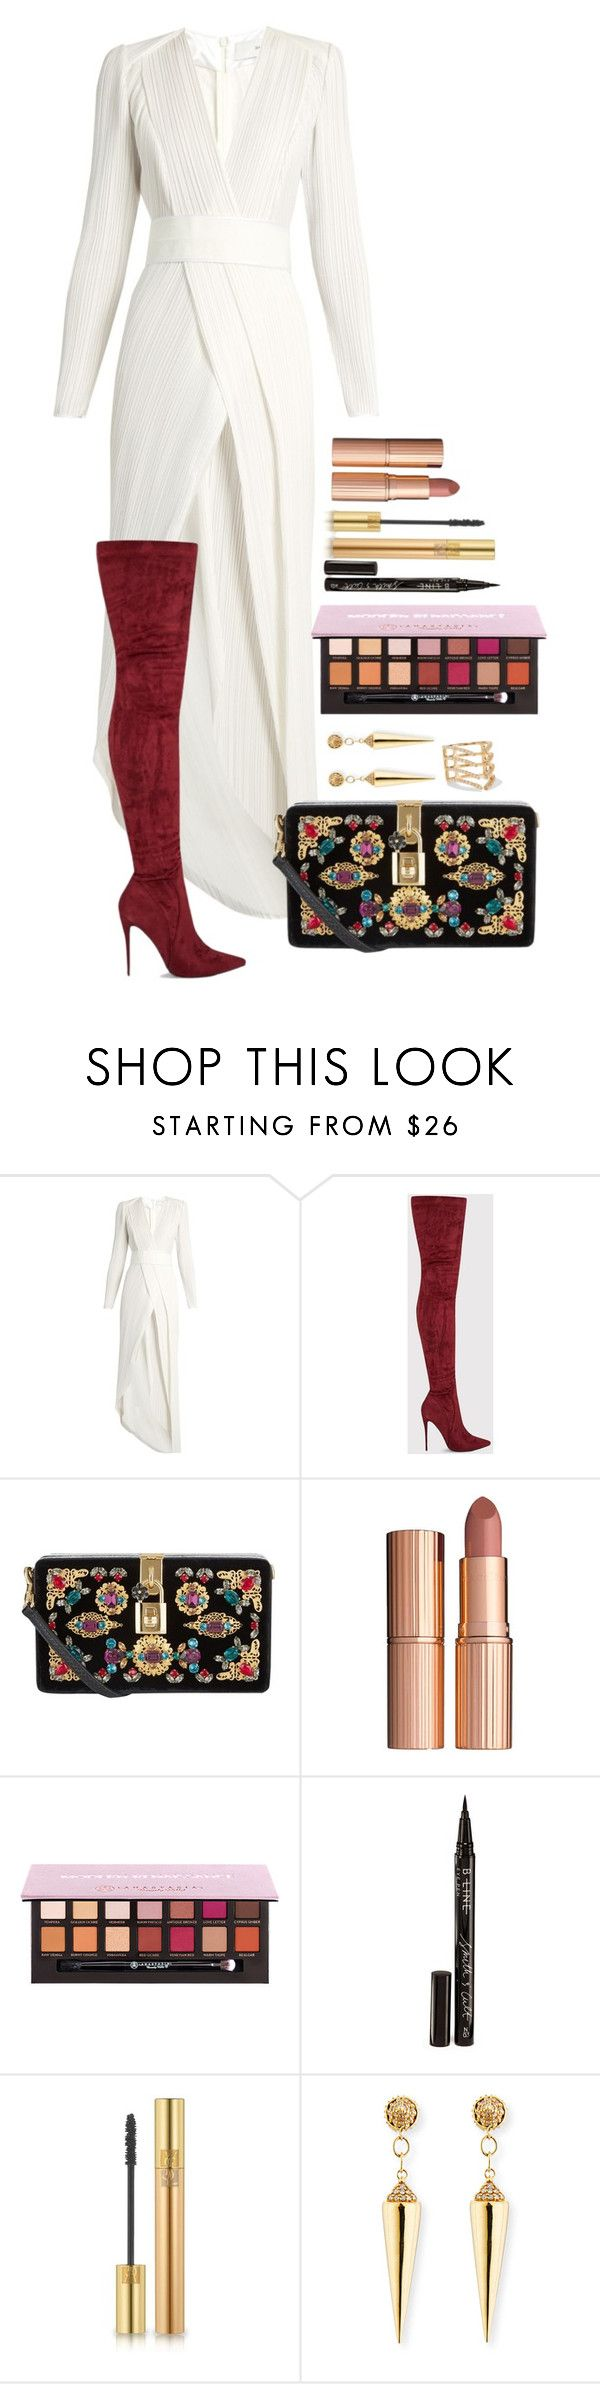 """Untitled #1697"" by fabianarveloc on Polyvore featuring Galvan, Dolce&Gabbana, Charlotte Tilbury, Smith & Cult, Yves Saint Laurent, Sydney Evan and Khai Khai"